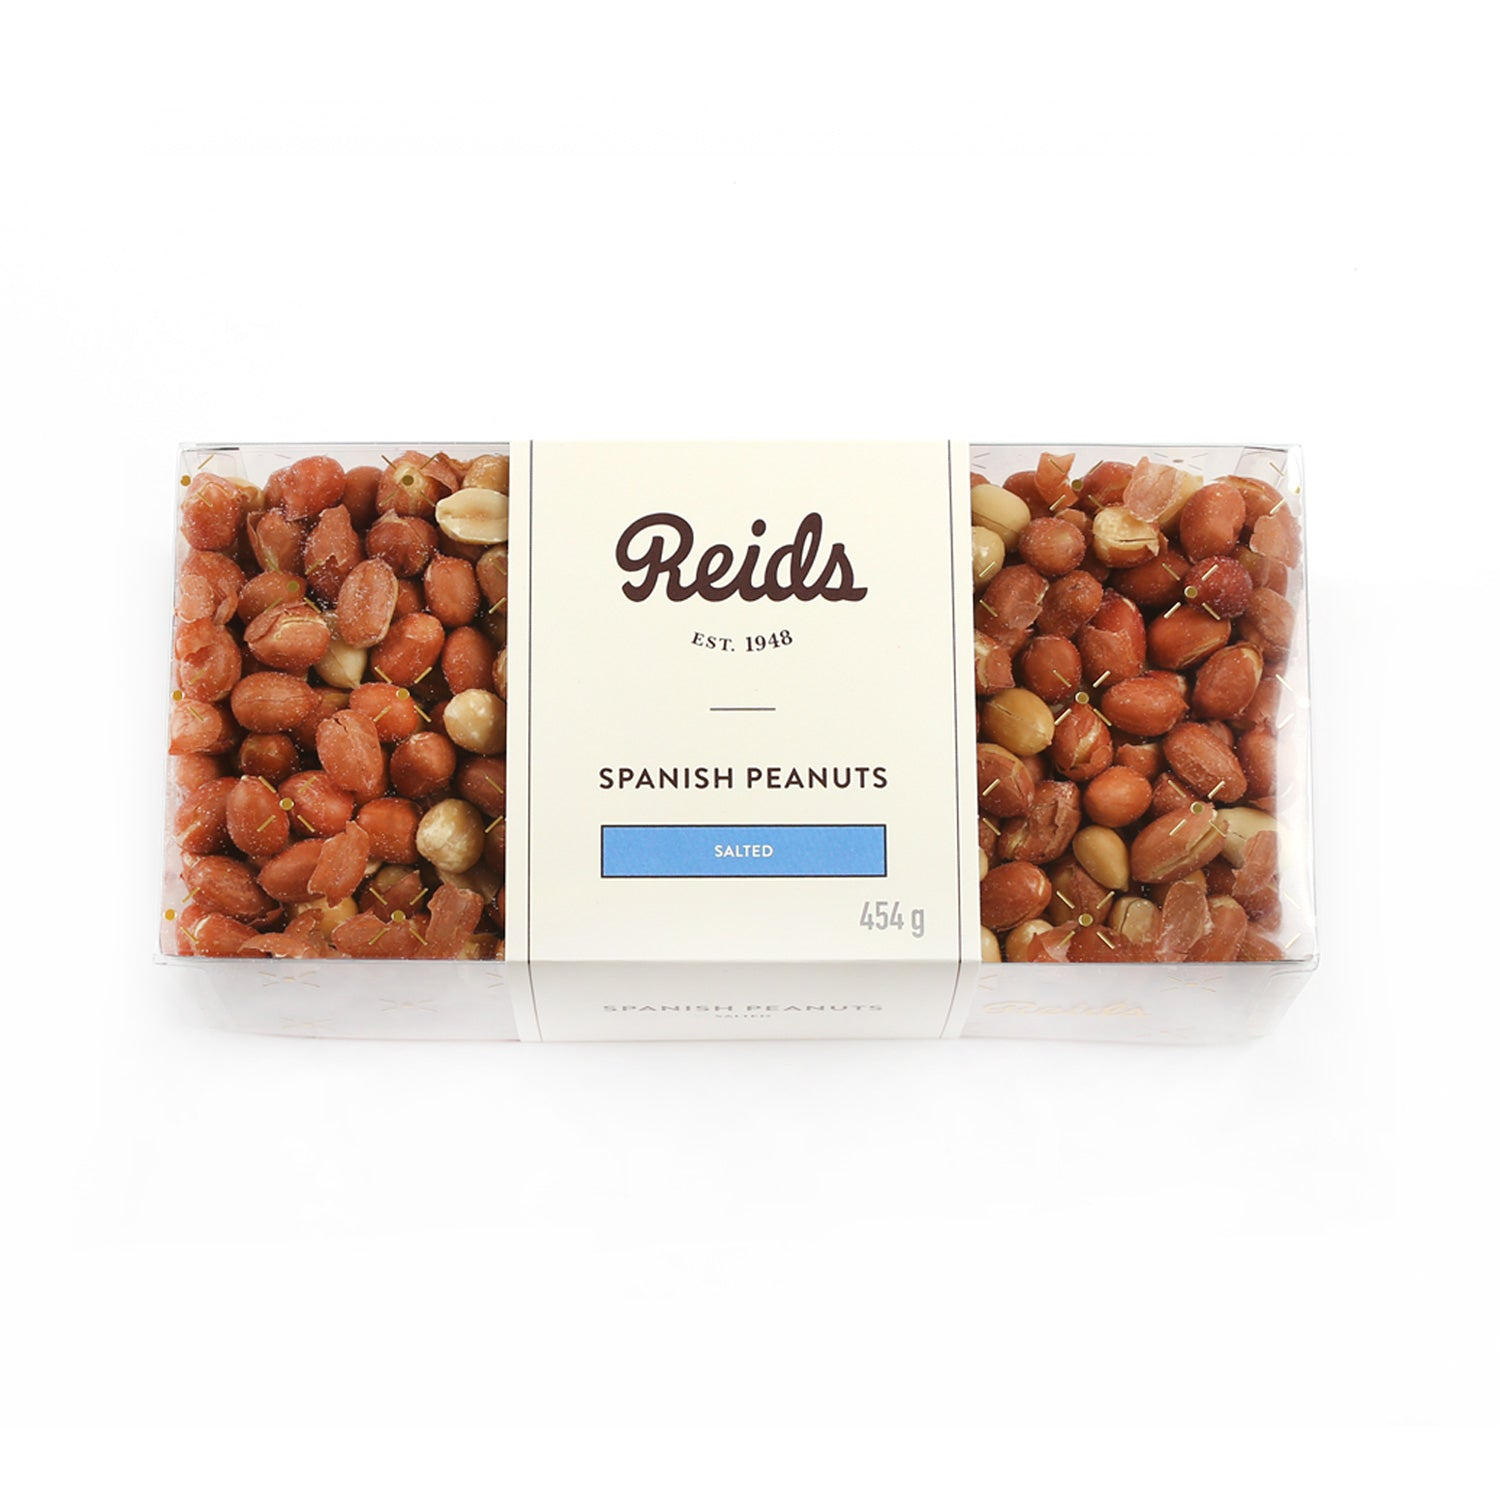 1 lb clear box of salted Spanish peanuts